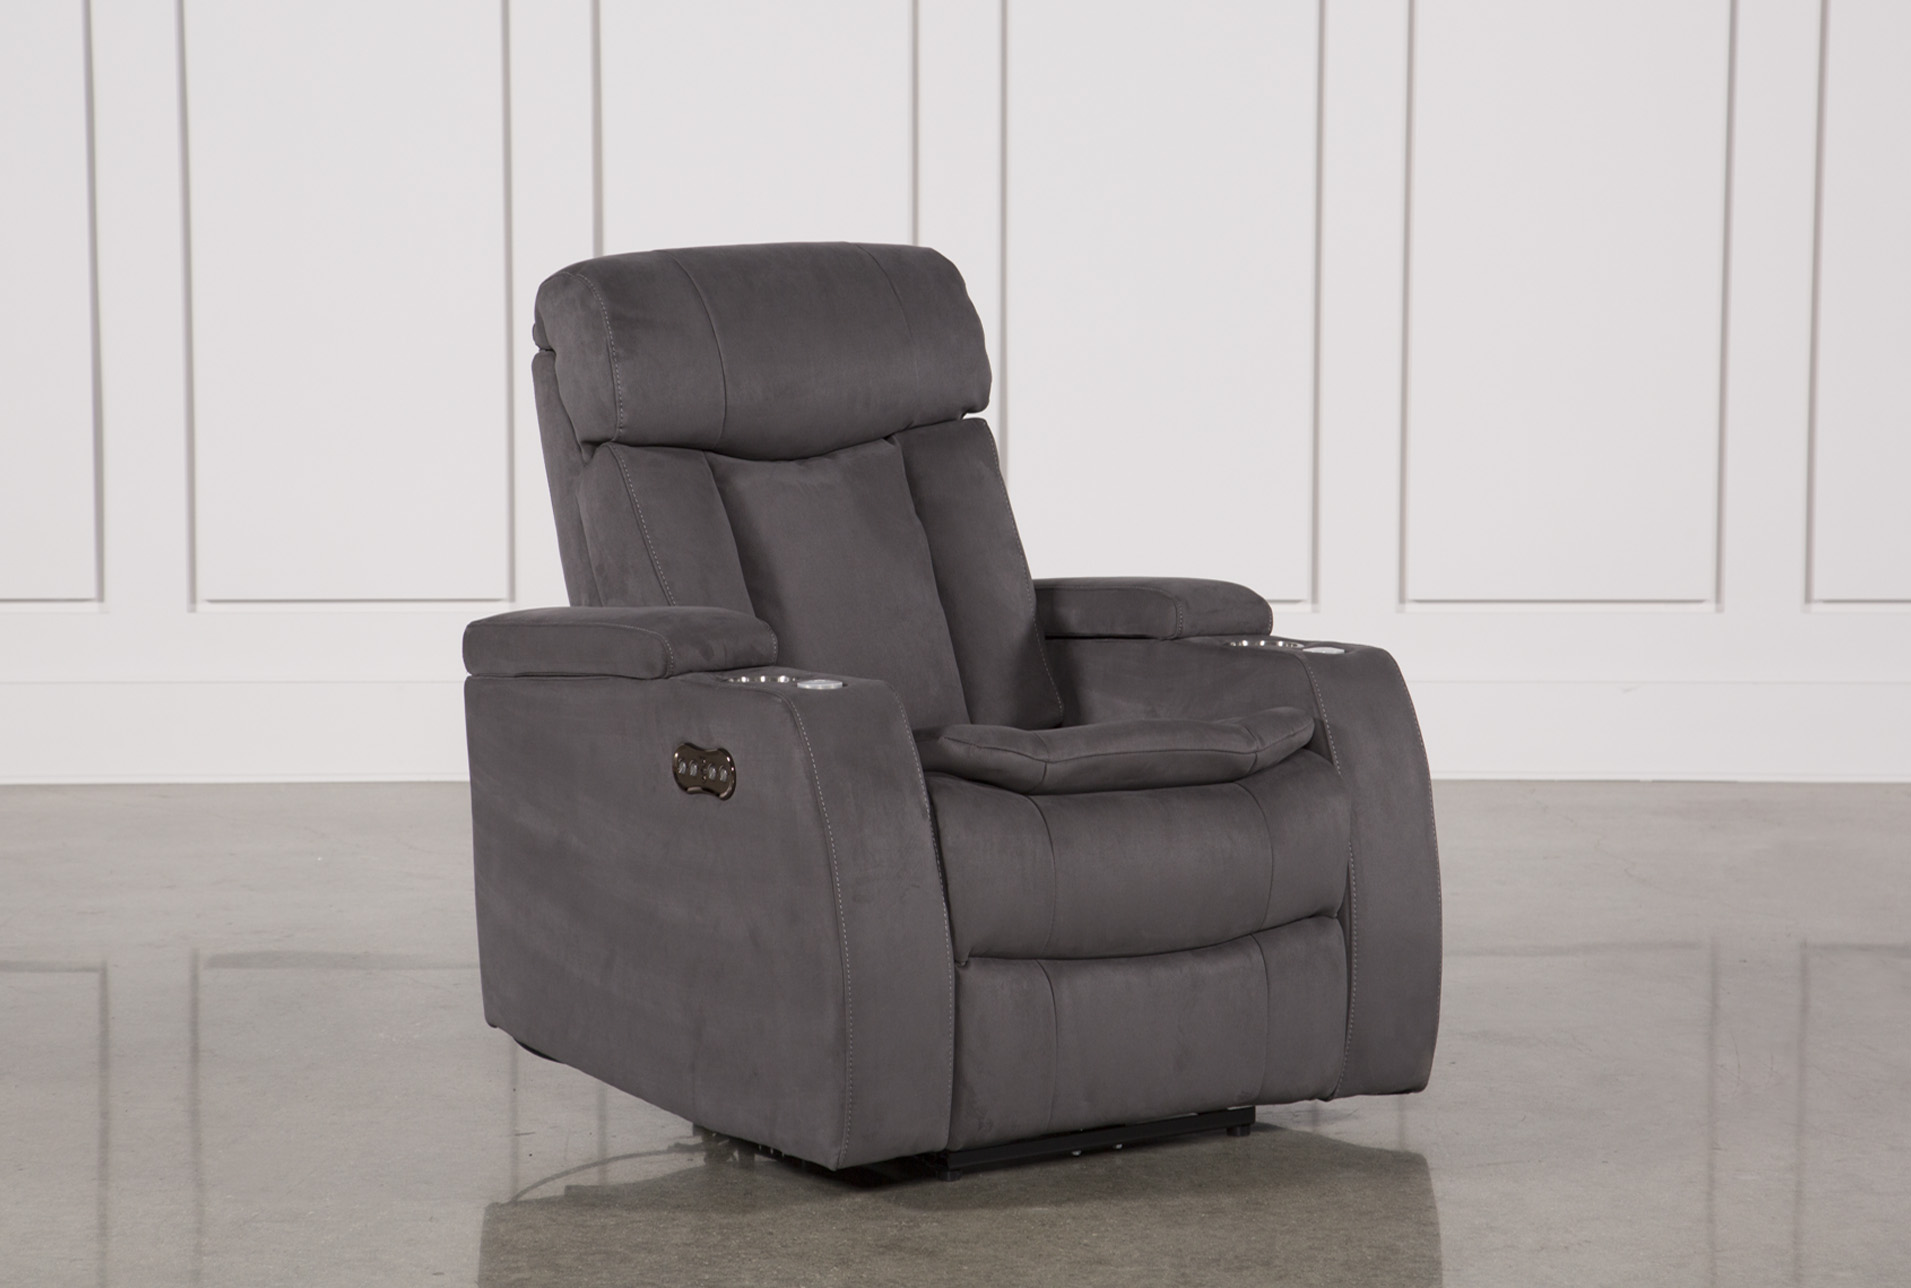 Beau Celebrity Steel Home Theater Recliner W/Power Headrest (Qty: 1) Has Been  Successfully Added To Your Cart.